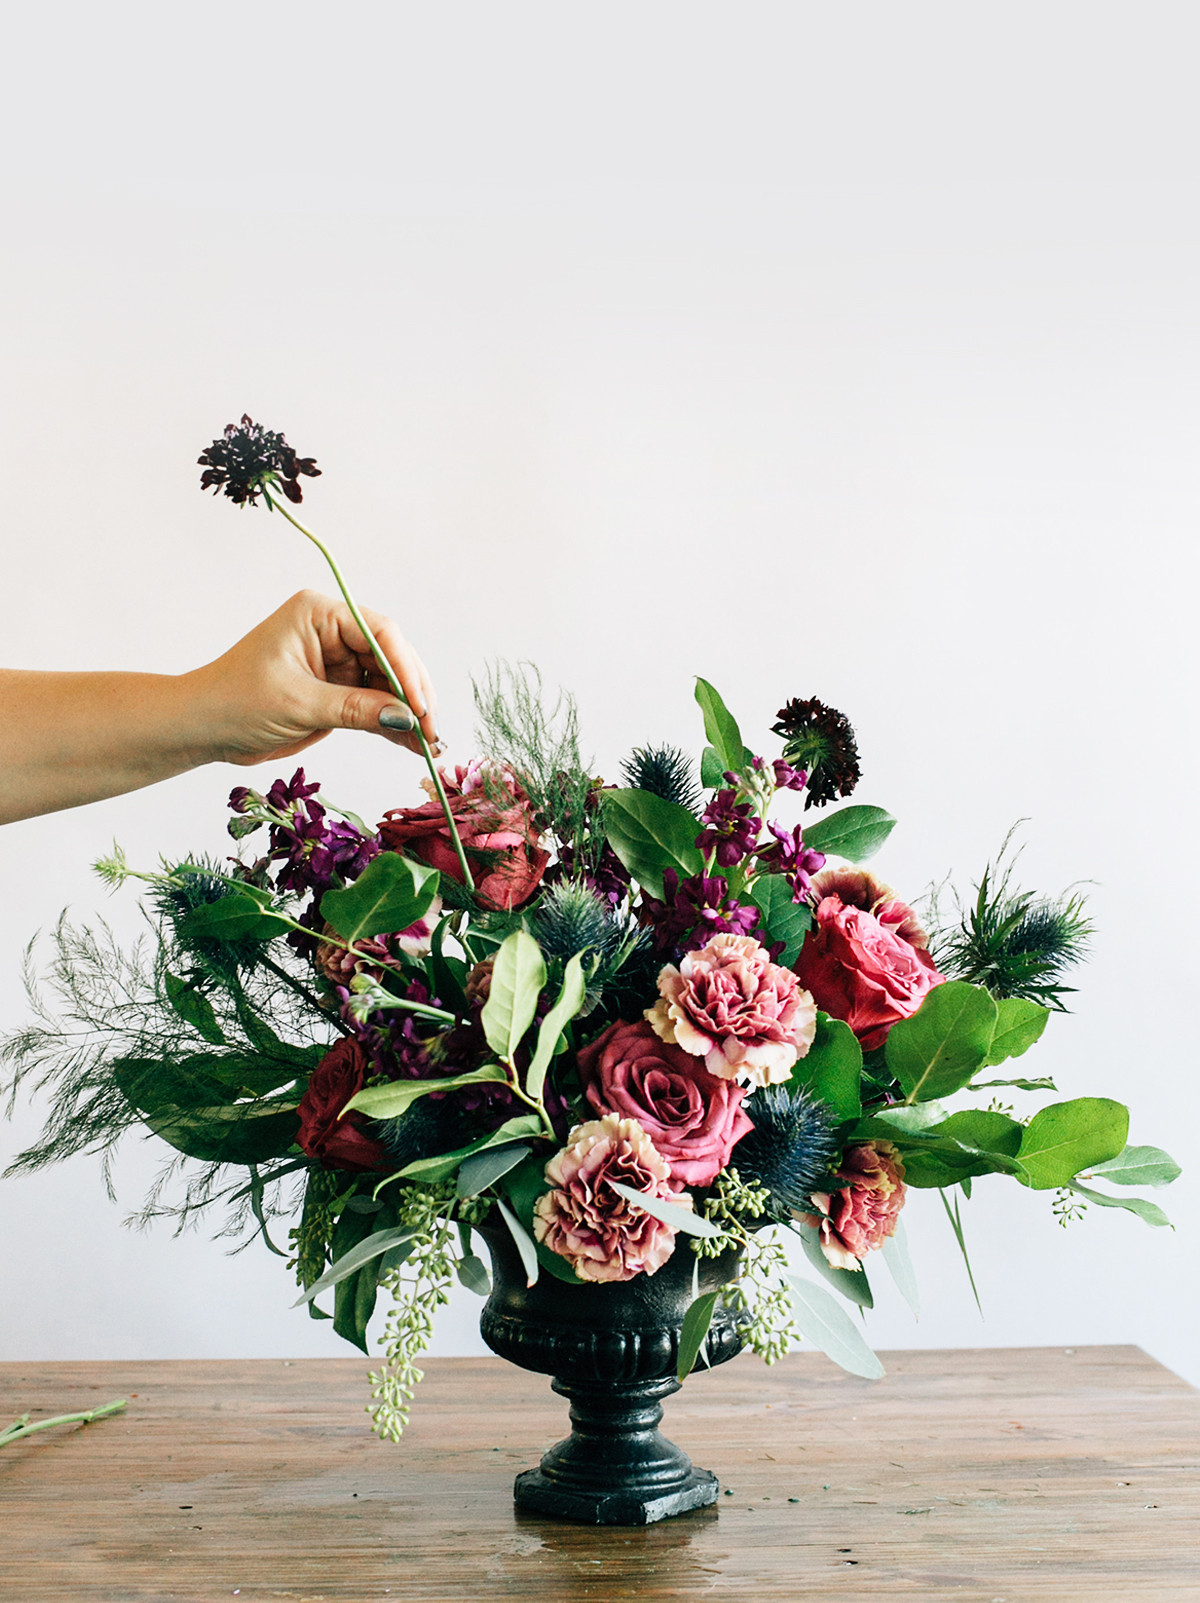 Best ideas about DIY Flowers For Wedding . Save or Pin DIY Wedding Flowers 10 Simple Tips That Will Save You a Now.